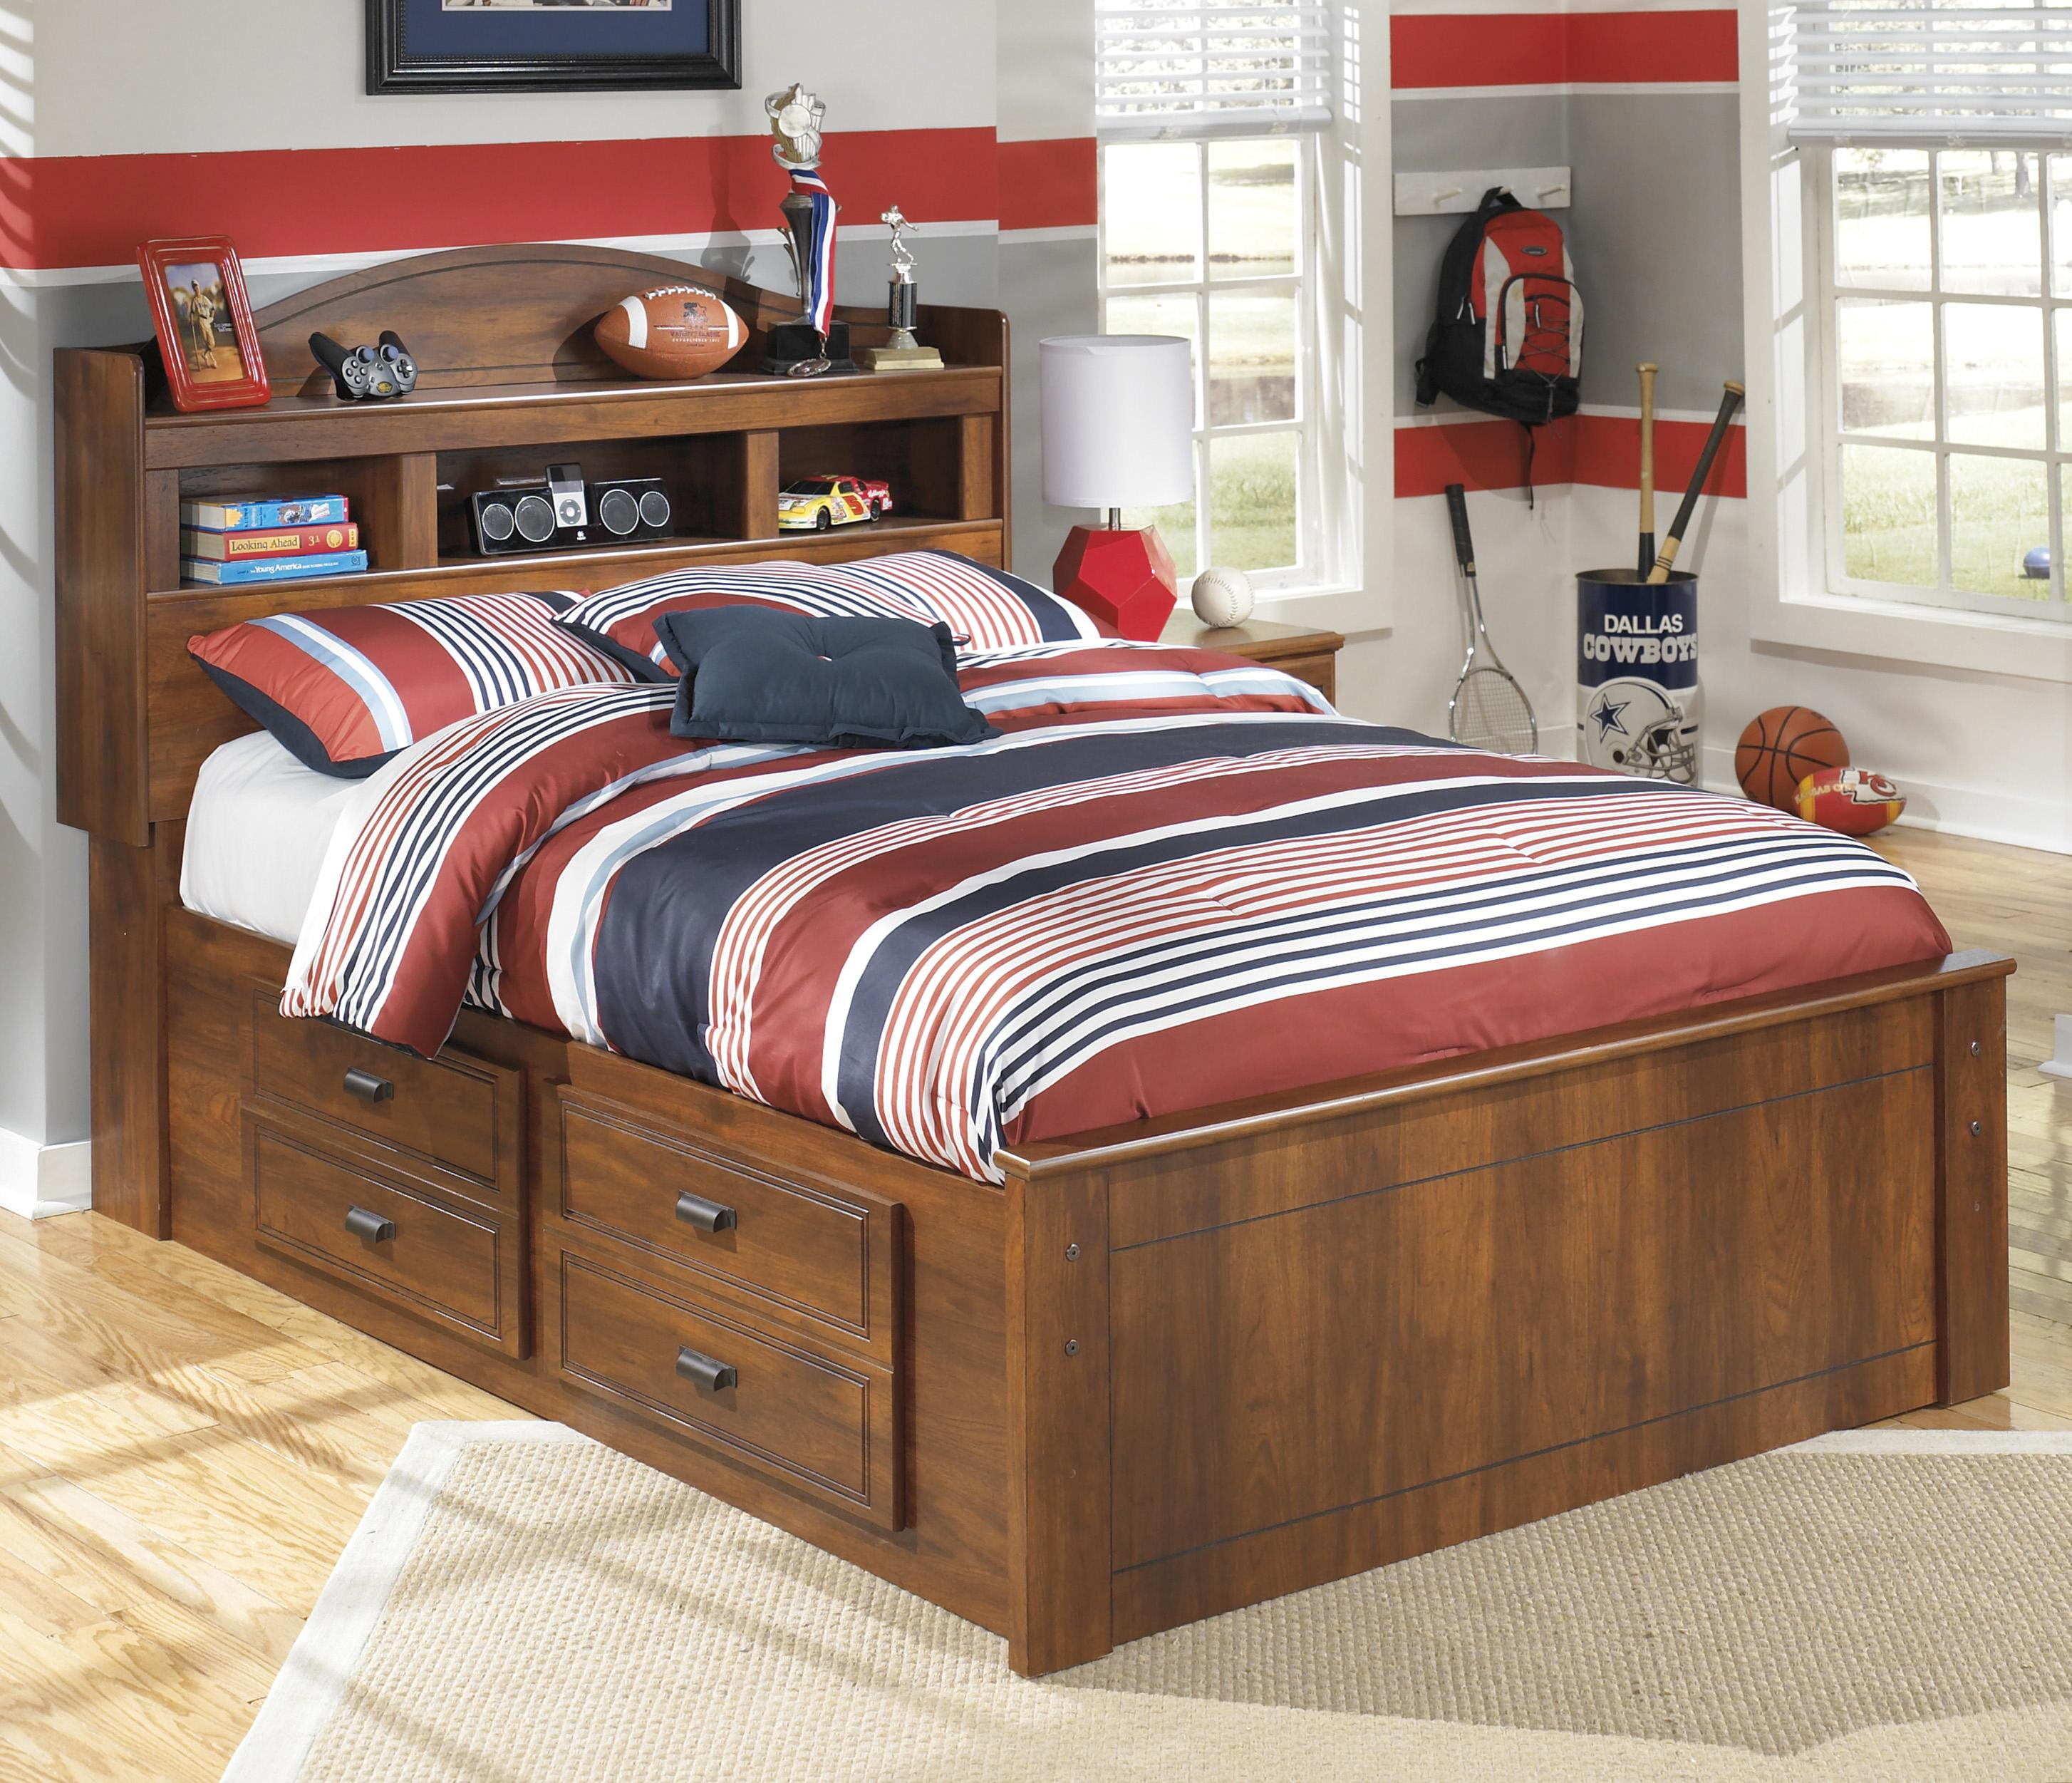 Signature Design By Ashley Barchan Full Bookcase Bed With Underbed Storage Del Sol Furniture